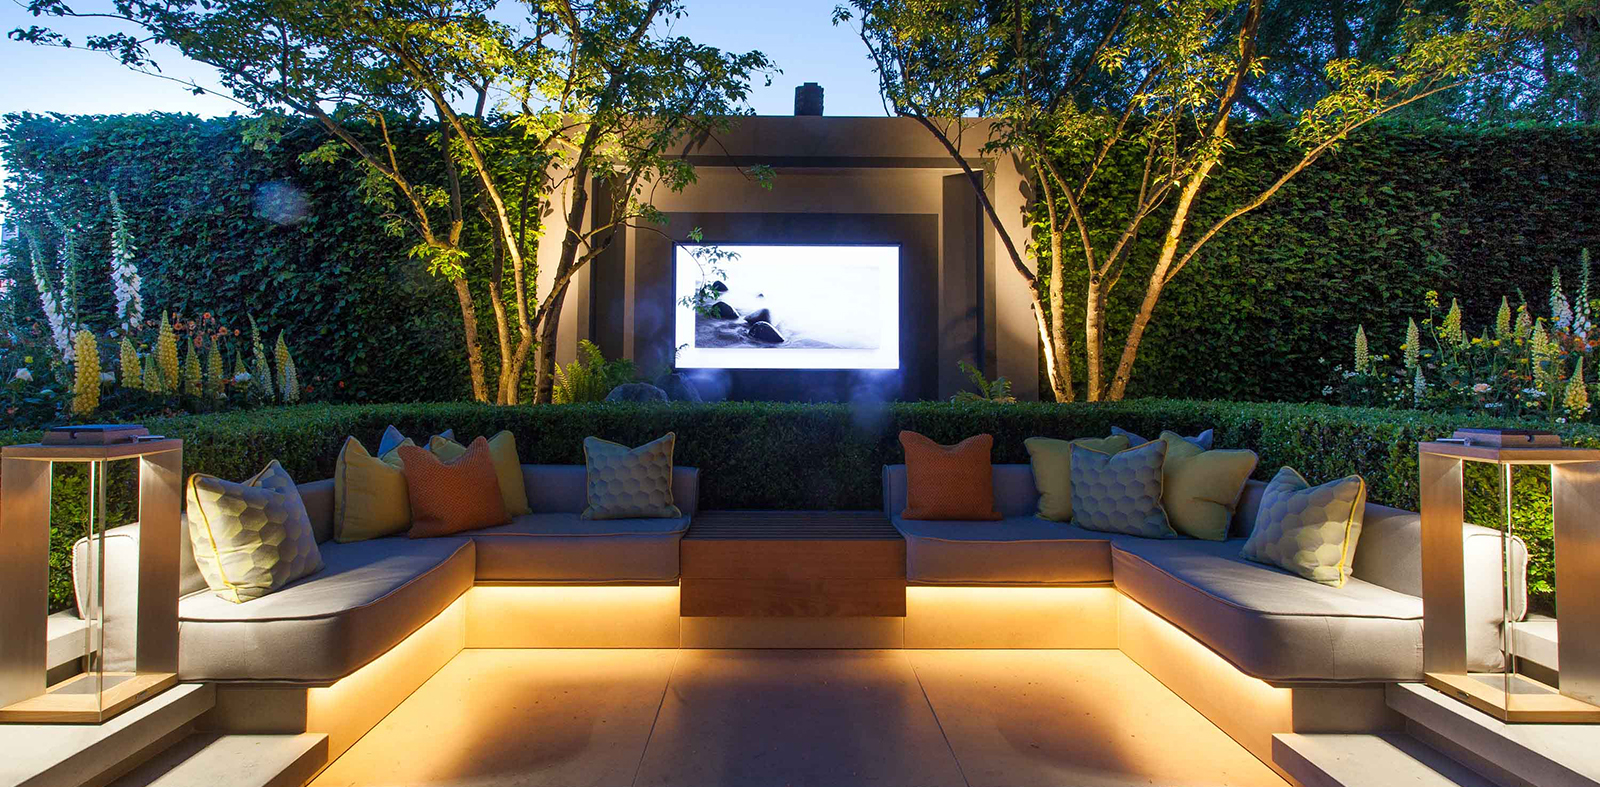 outdoor seating and TV lighting